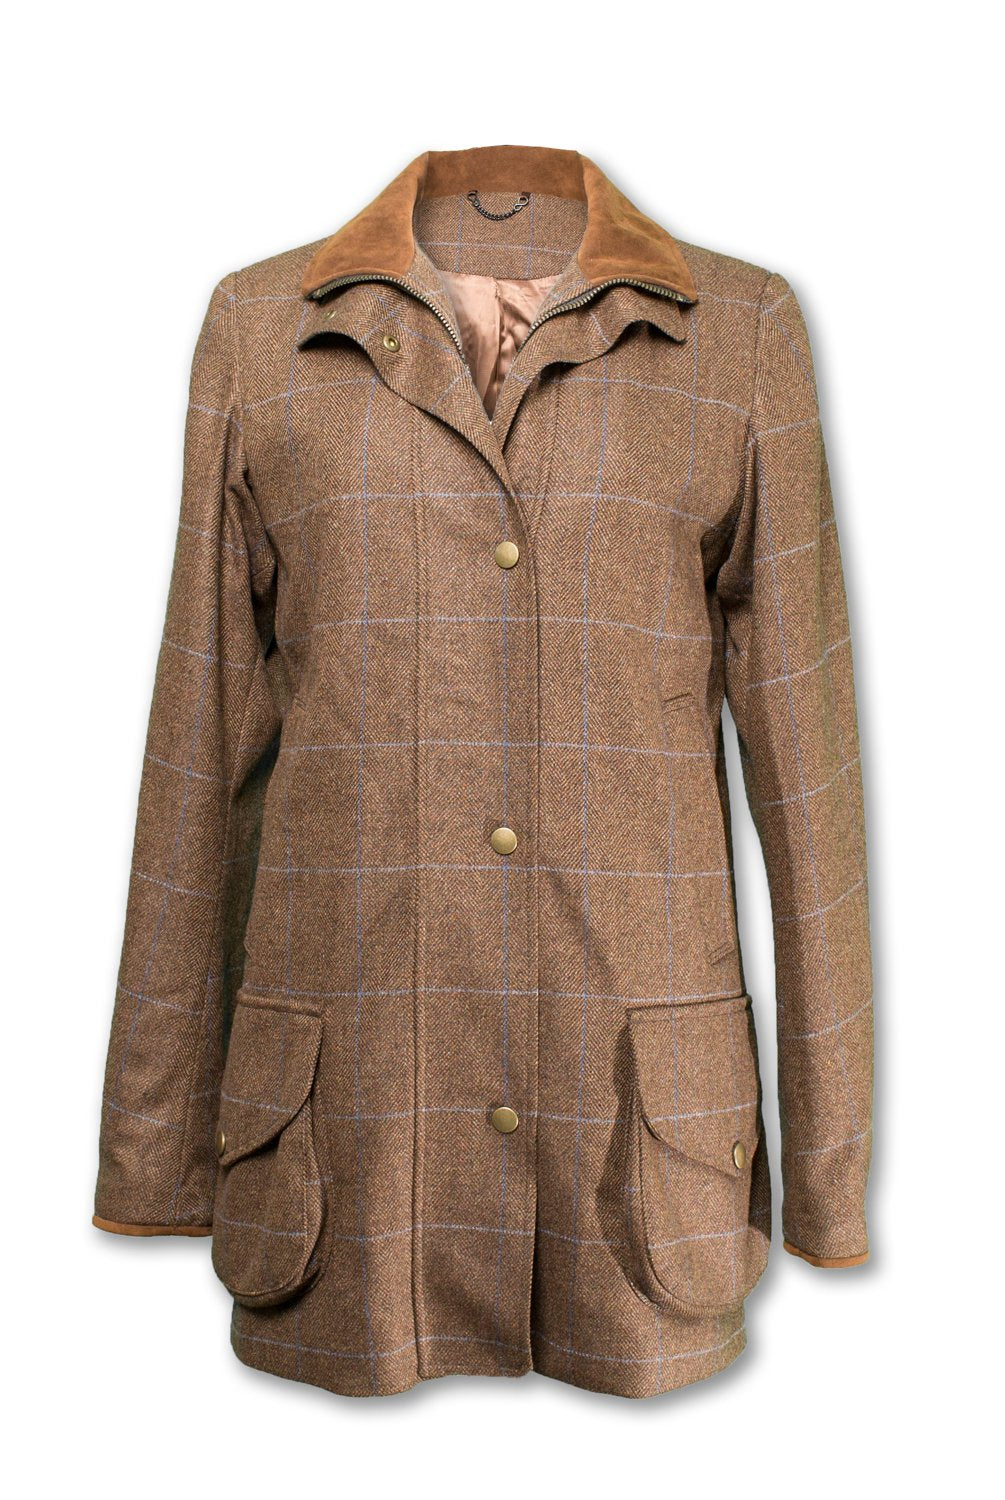 Made to Order Tweed Field Coats - BARRINGTON AYRE SPORT